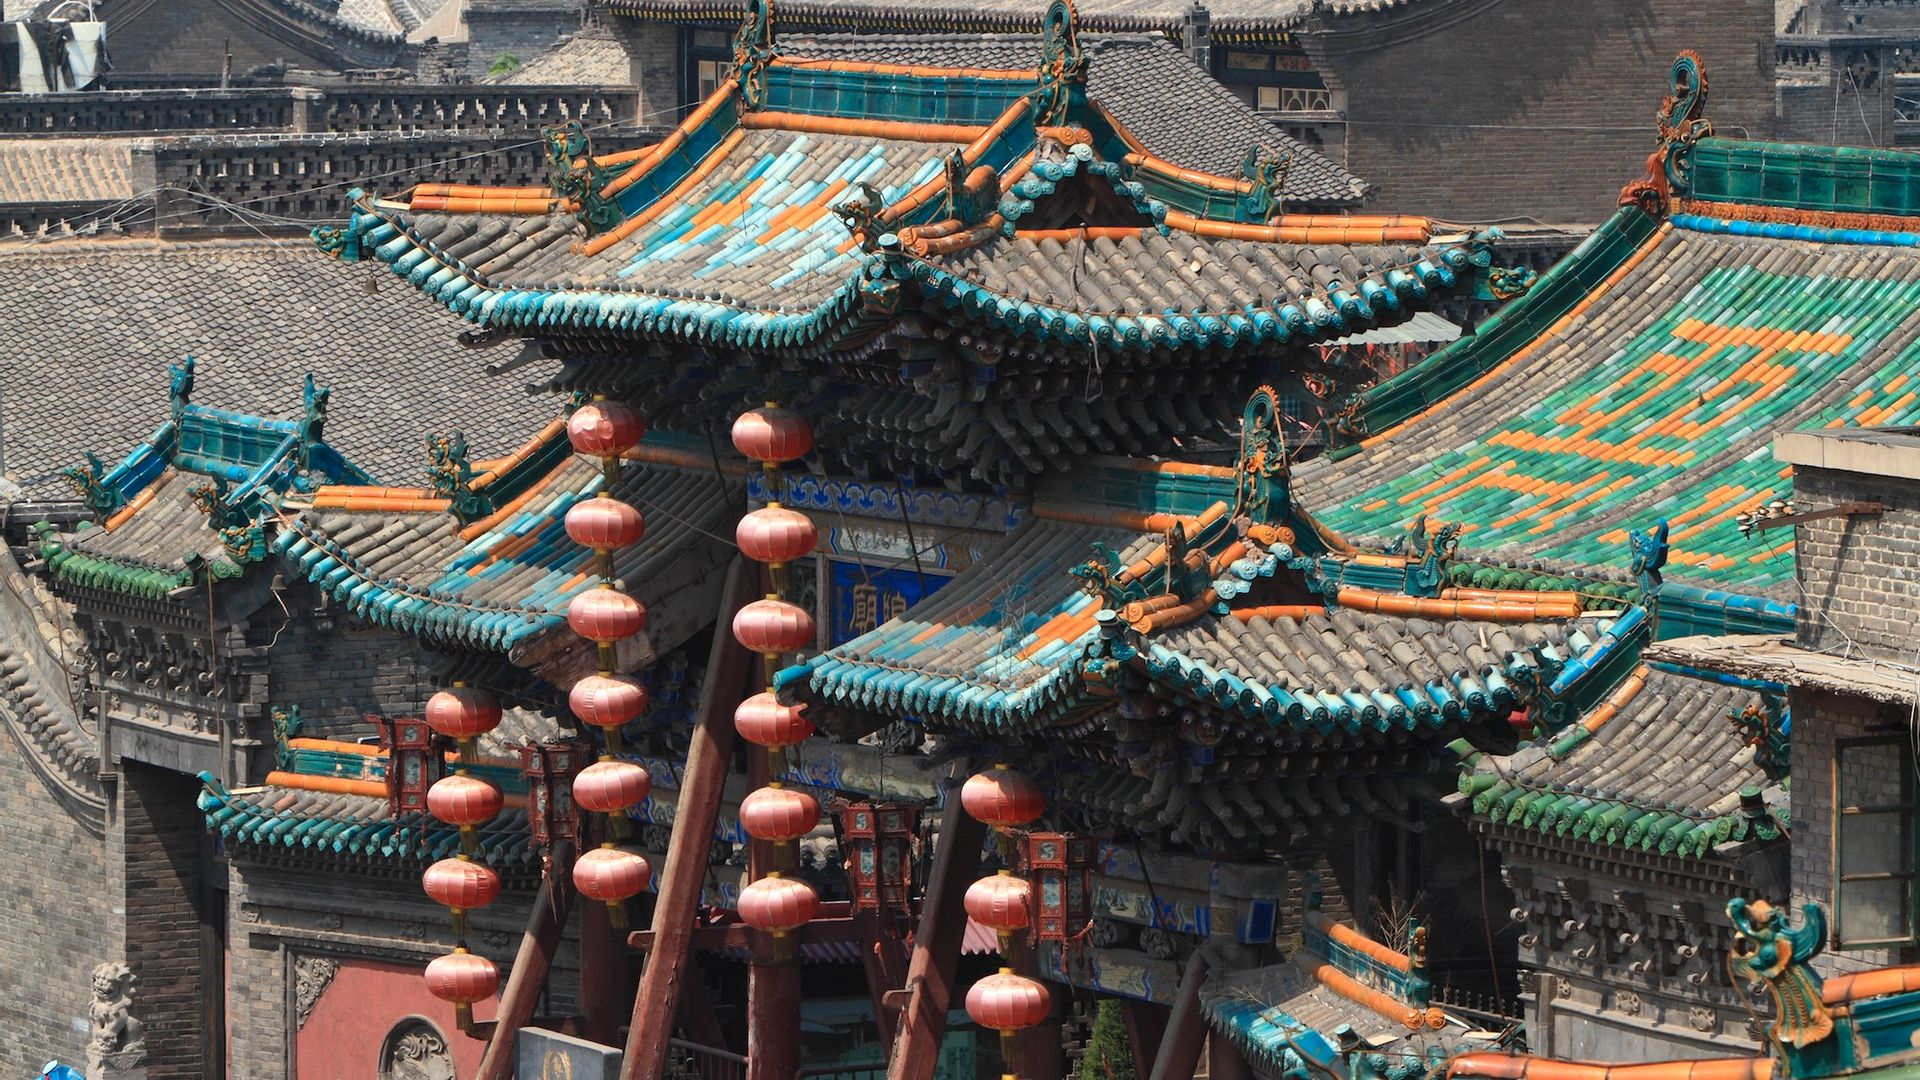 Vieille ville, Pingyao - Chine